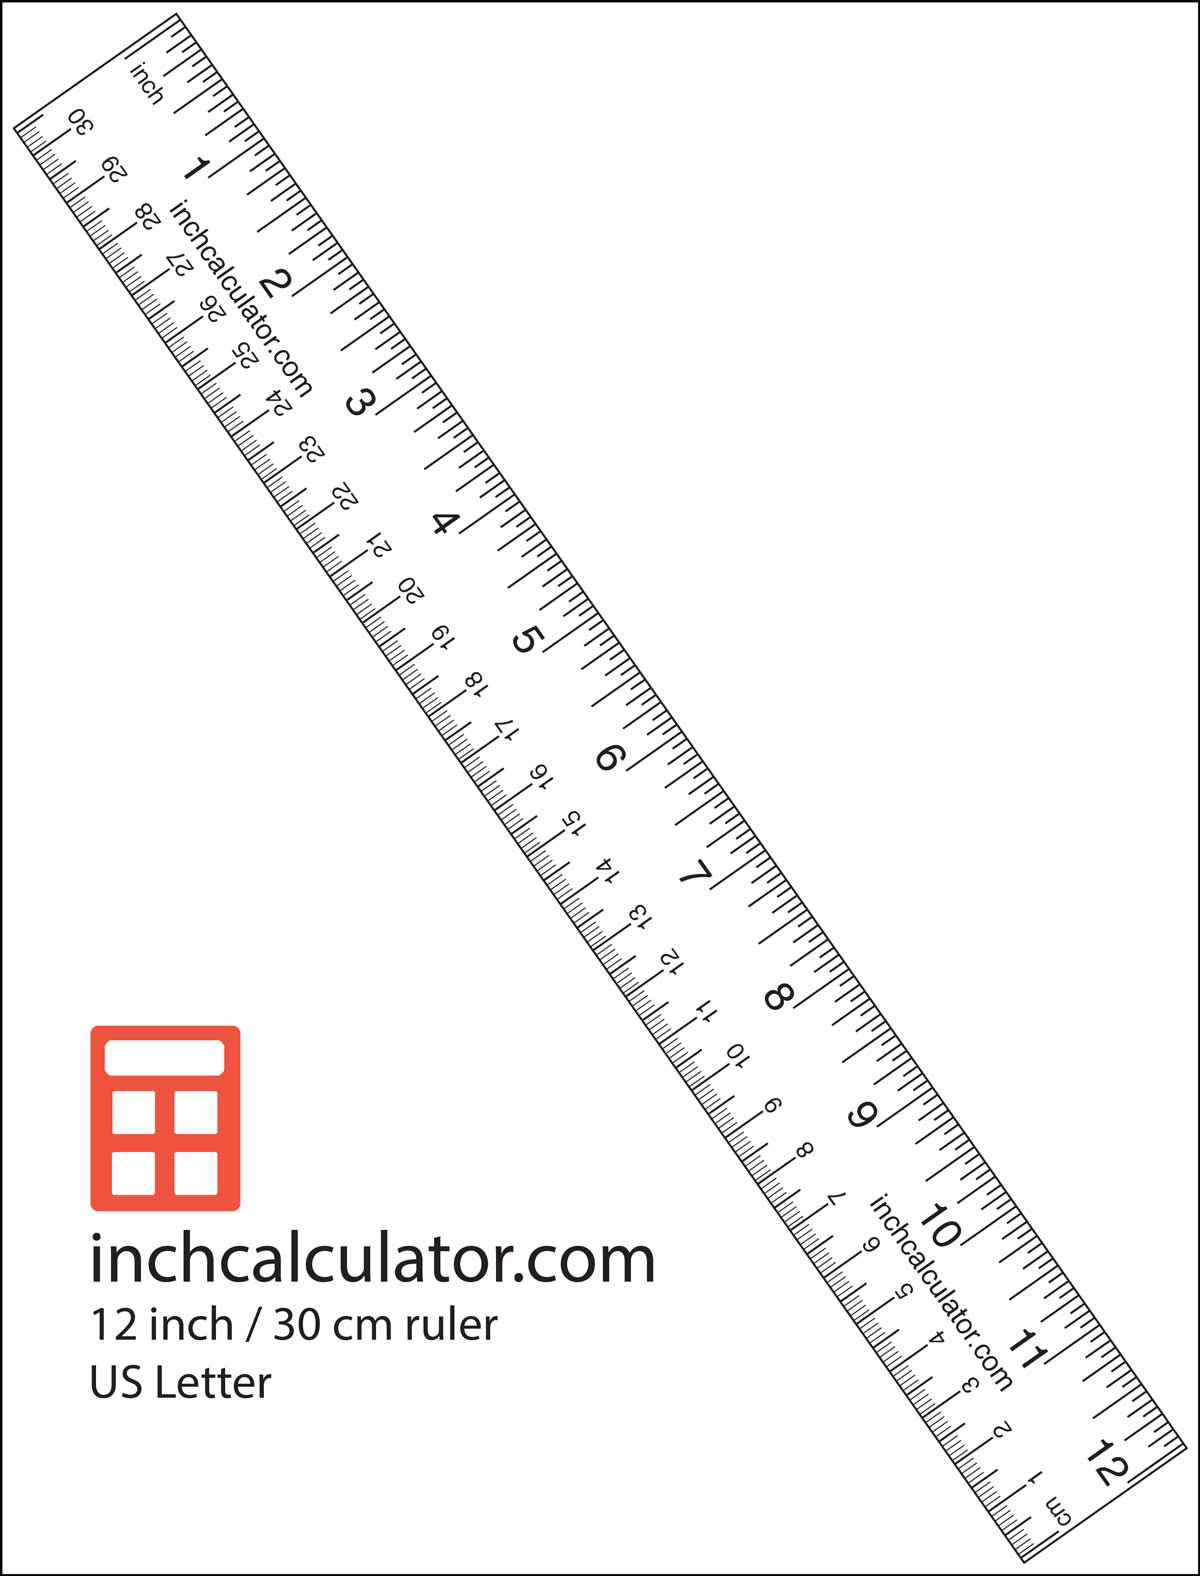 worksheet Ruler Measurement printable rulers free downloadable 12 inch calculator print a paper ruler to take measurements when you dont have tape measure